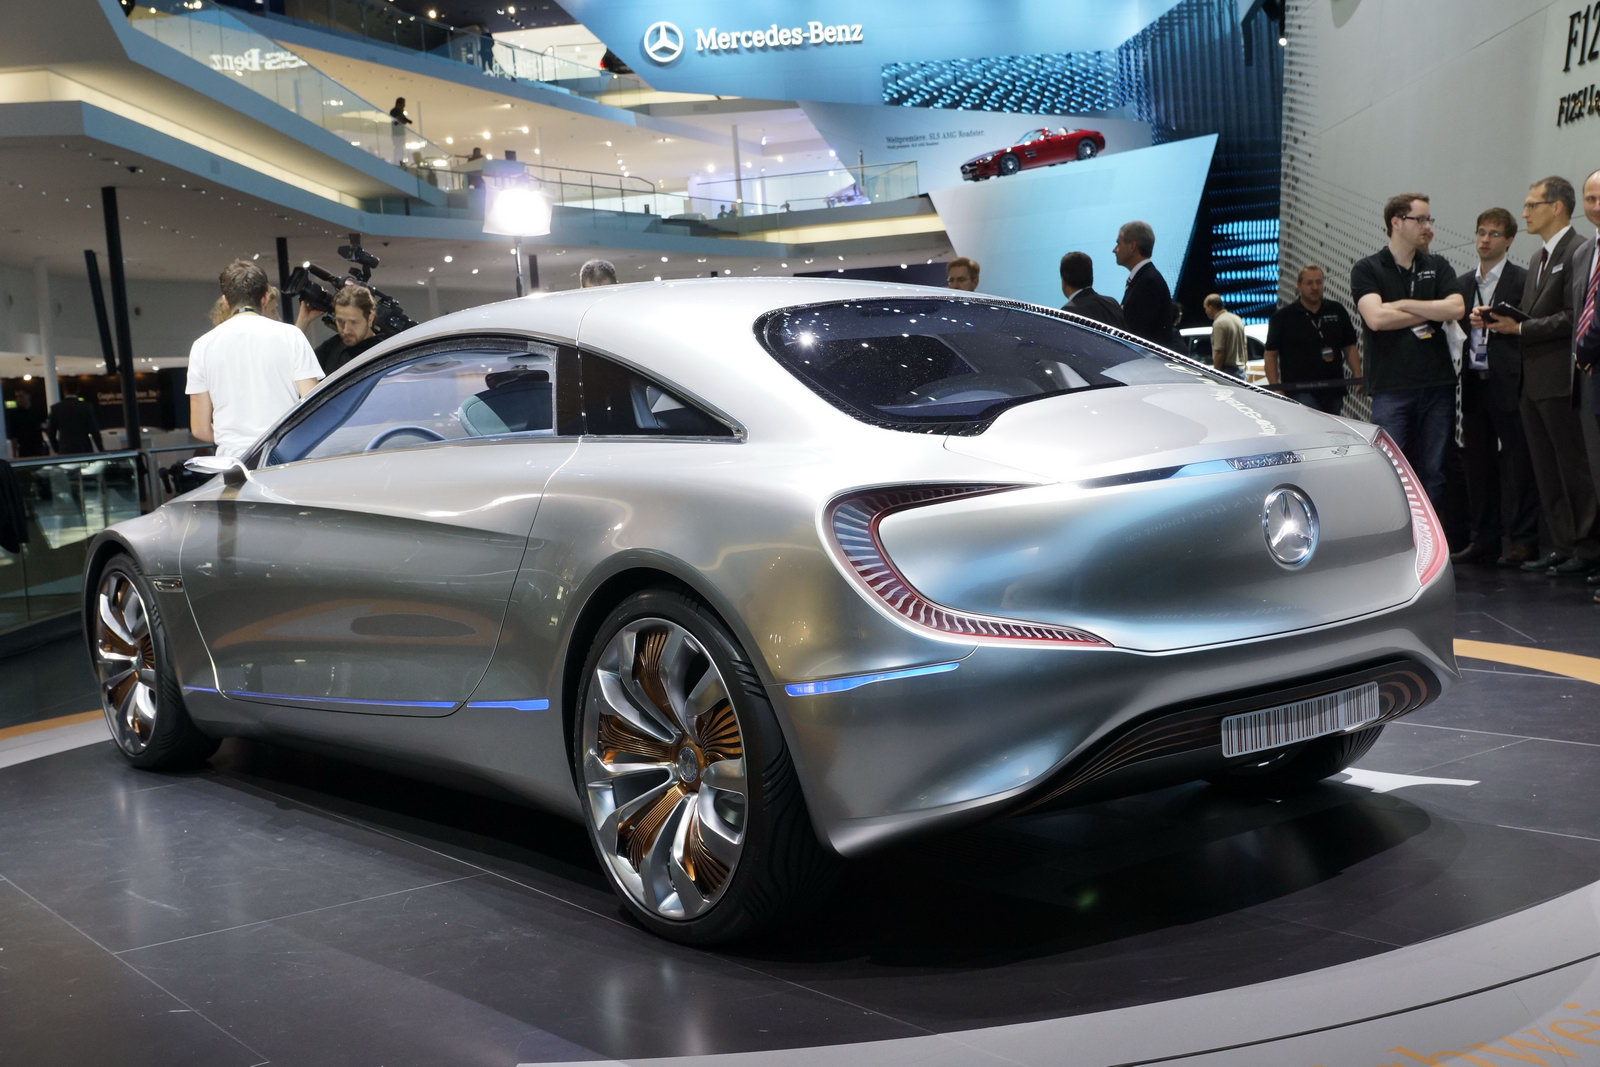 Mercedes benz f 125 gullwing plug in hybrid concept for Mercedes benz frankfurt